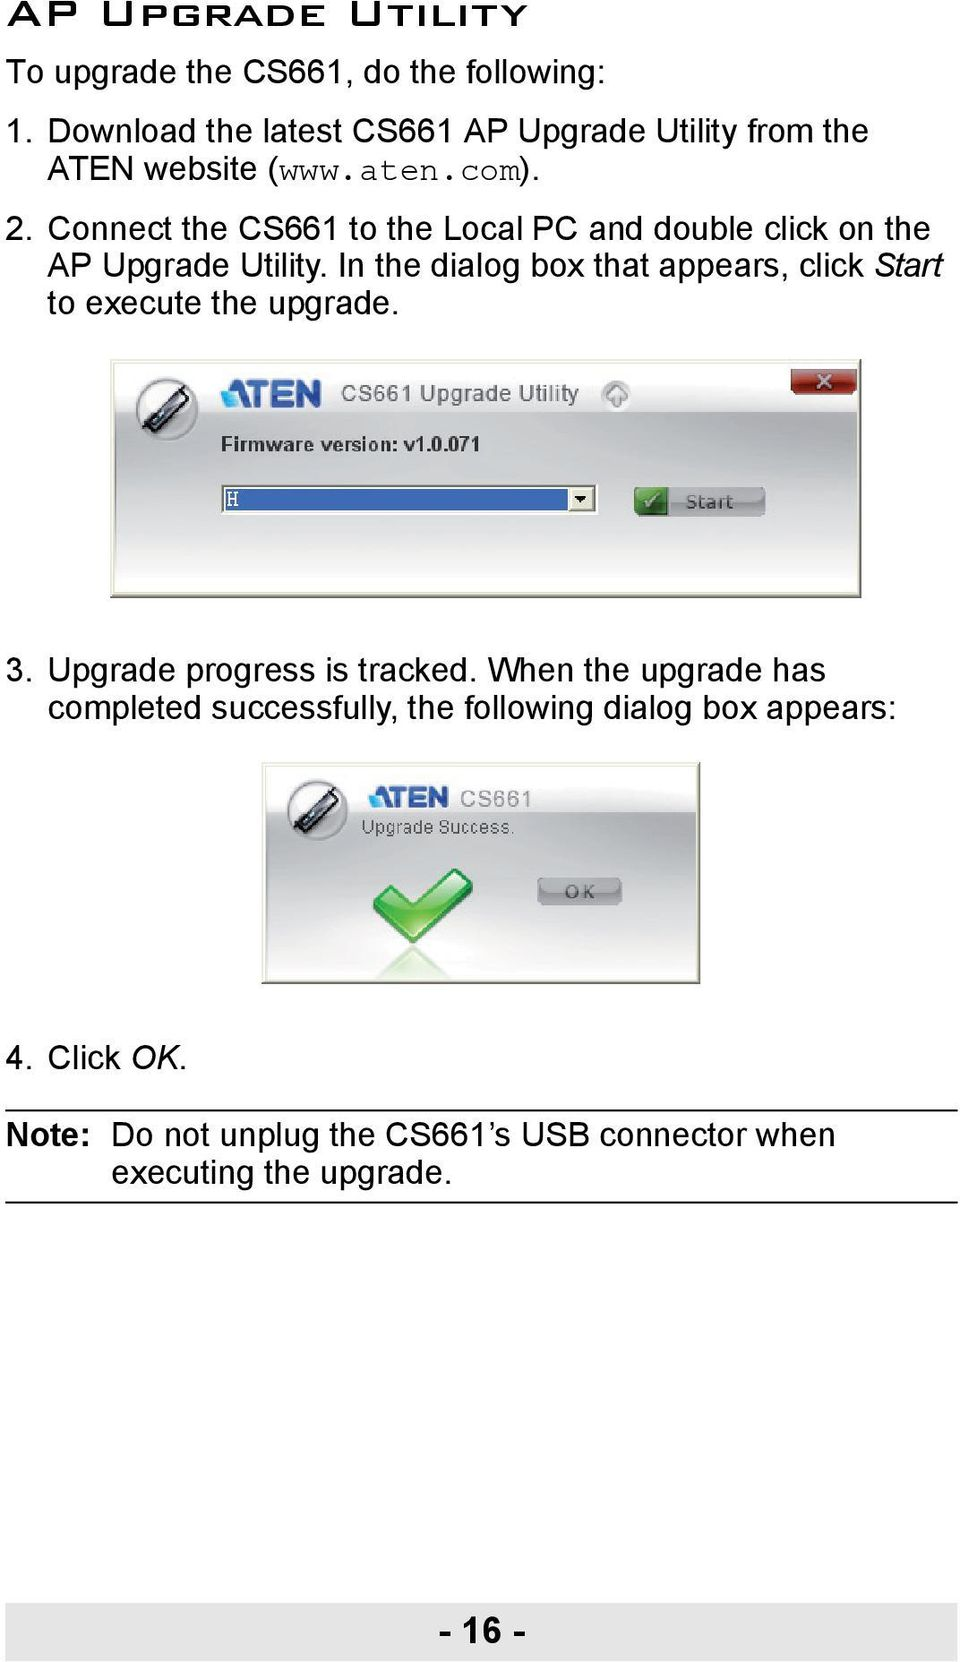 Connect the CS661 to the Local PC and double click on the AP Upgrade Utility.